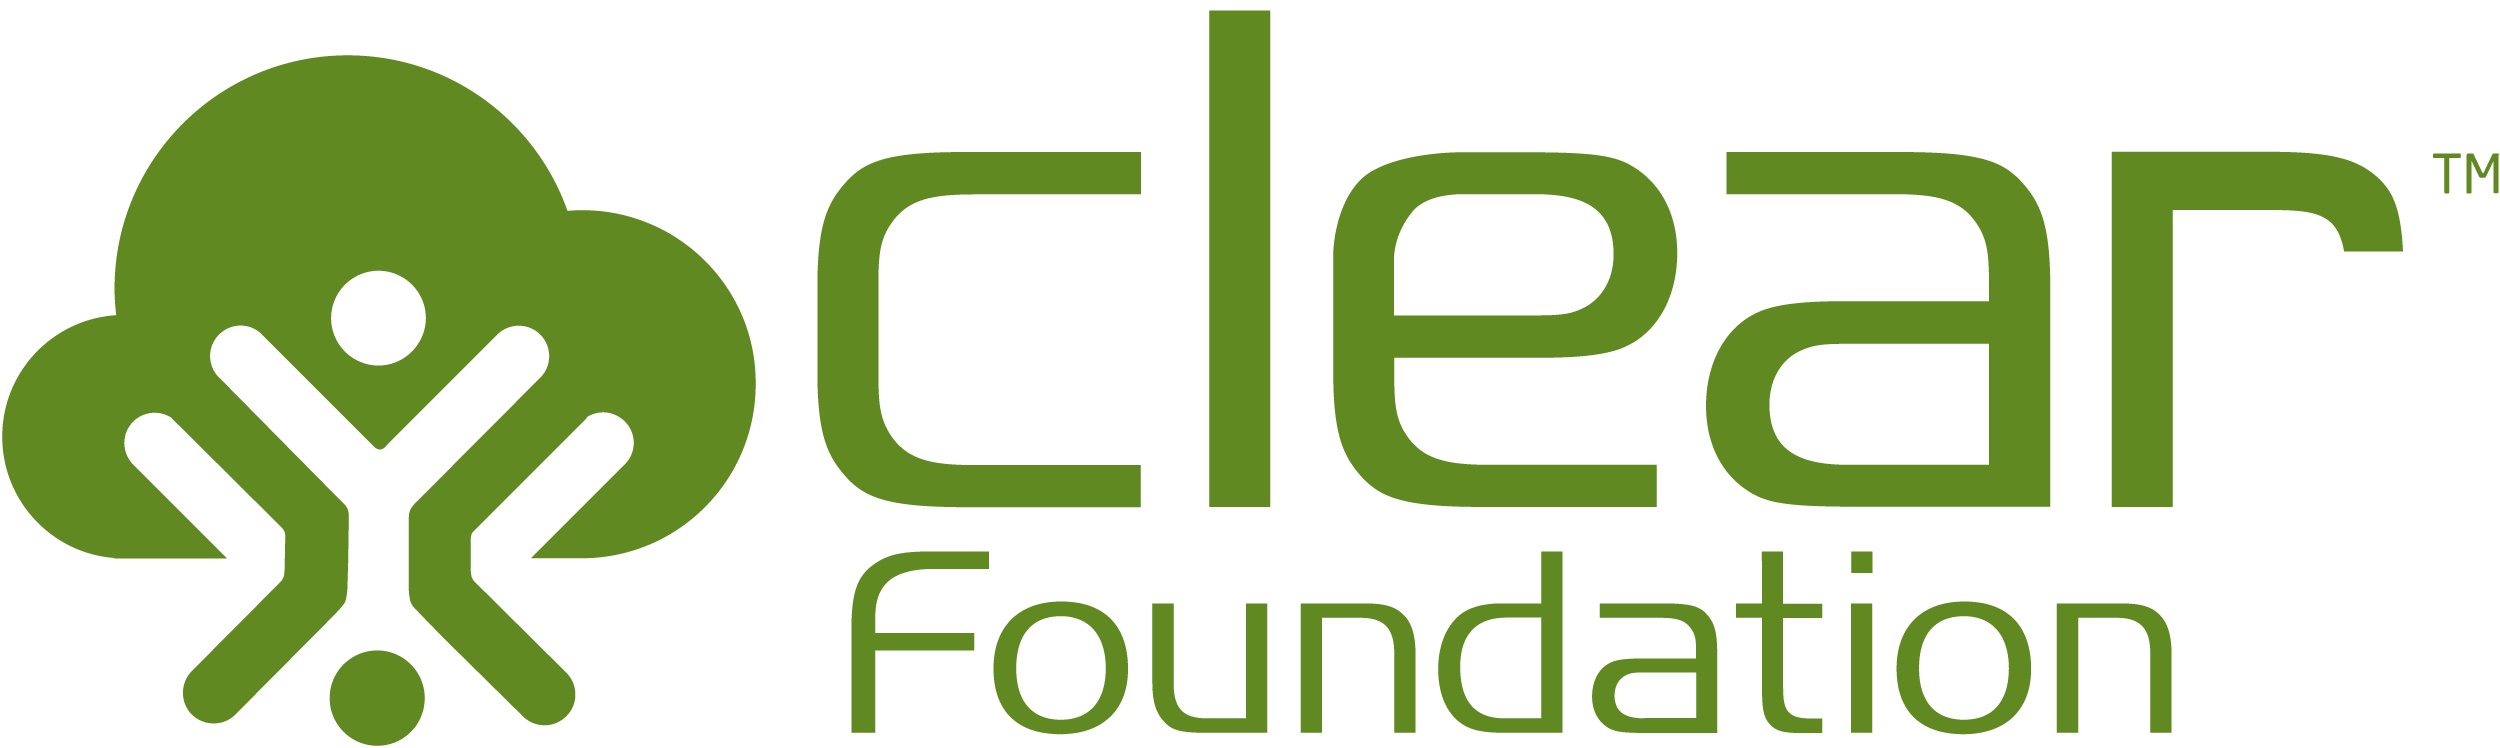 ClearFoundation_Logo.png